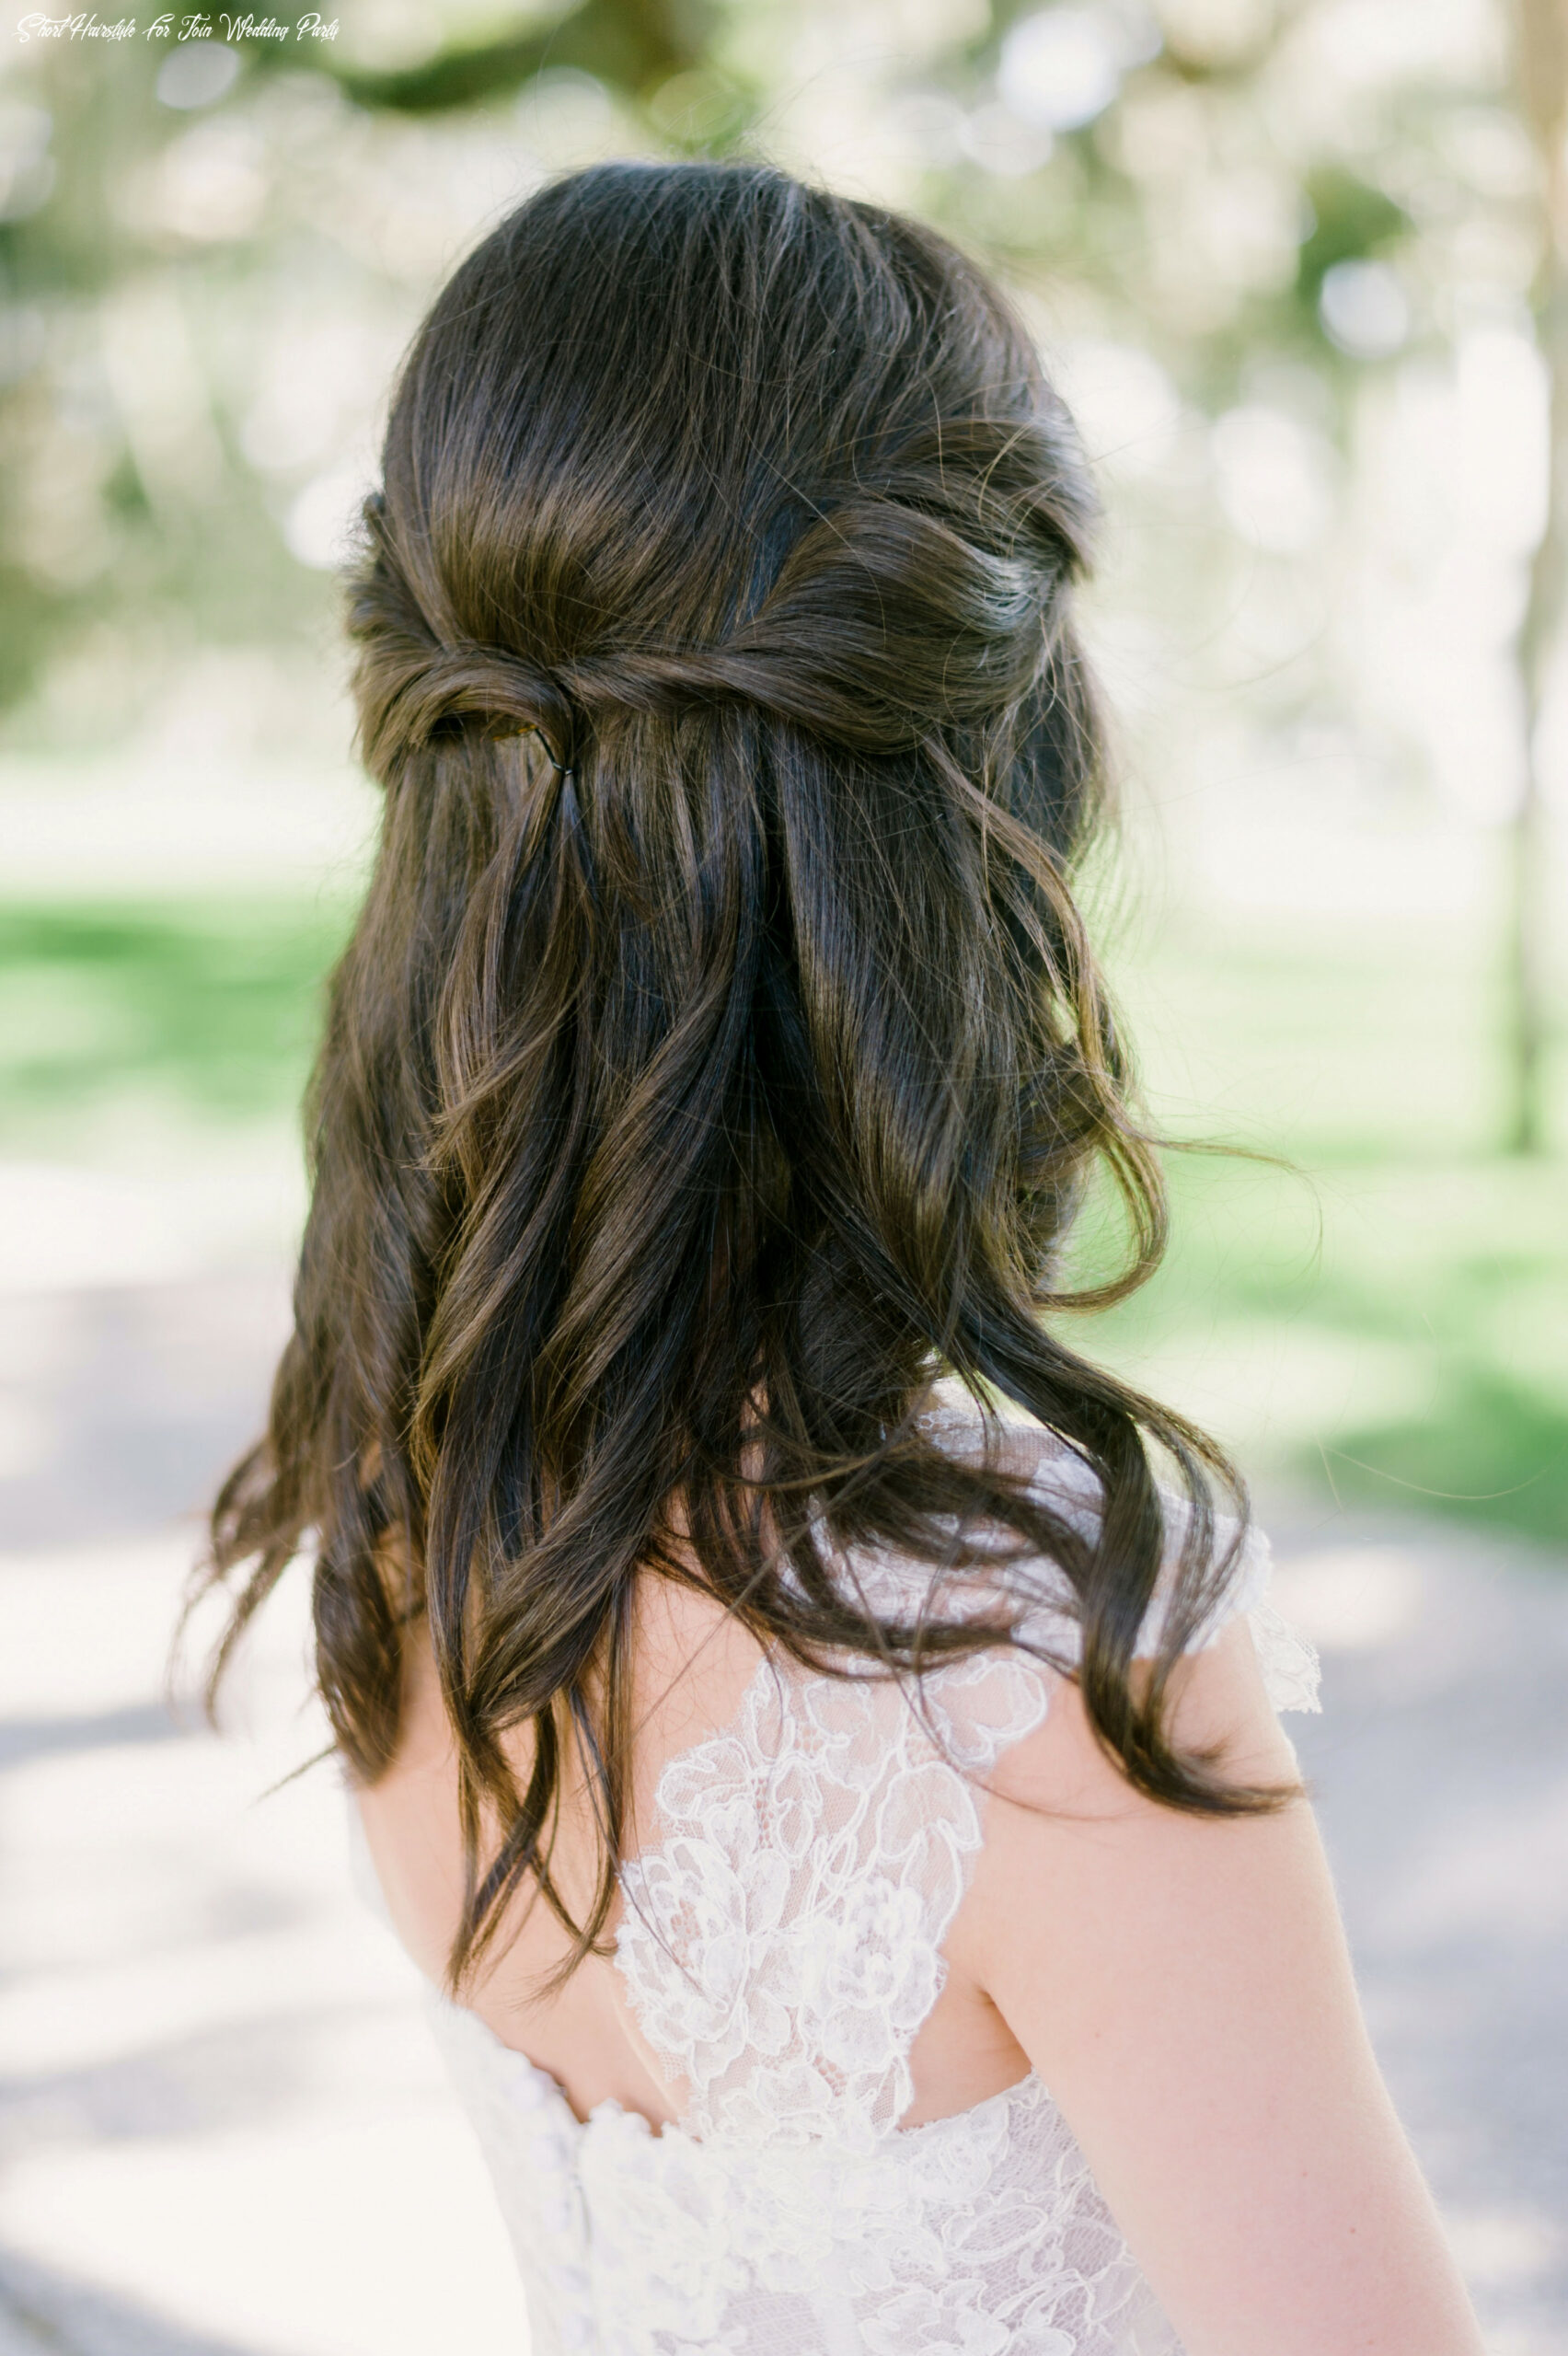 10 simple wedding hairstyles that prove less is more | martha